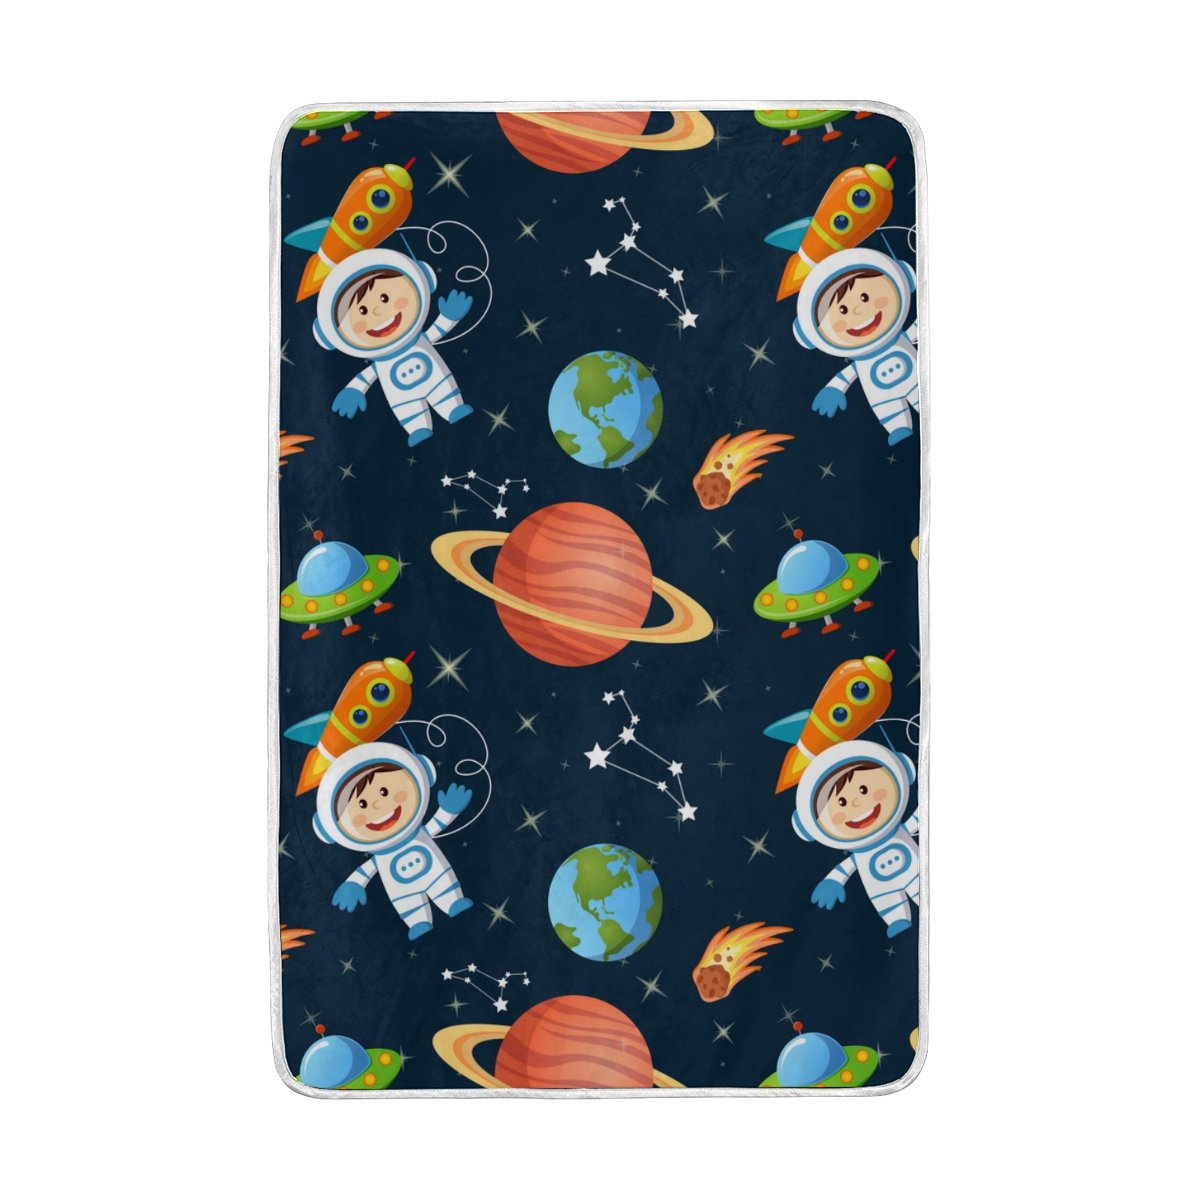 Vantaso Soft Blankets Throw Kids Astronaut Rocket Planets Earth Blue Microfiber Polyester Blankets for Bedroom Sofa Couch Living Room for Kids Children Girls Boys 60 x 90 inch